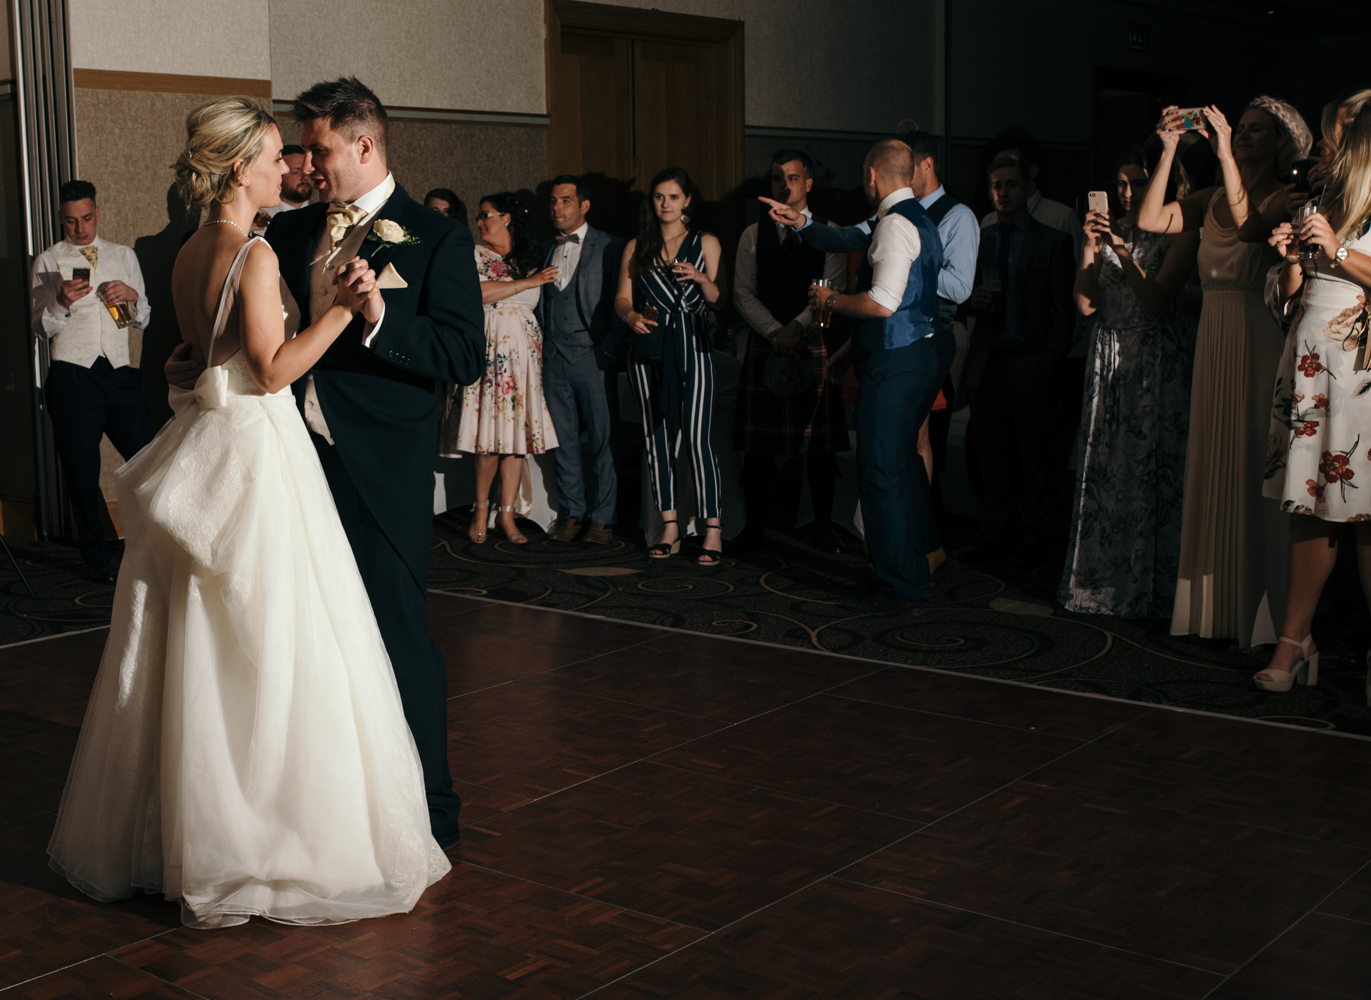 The bride and groom during the first dance with all of the guests standing watching